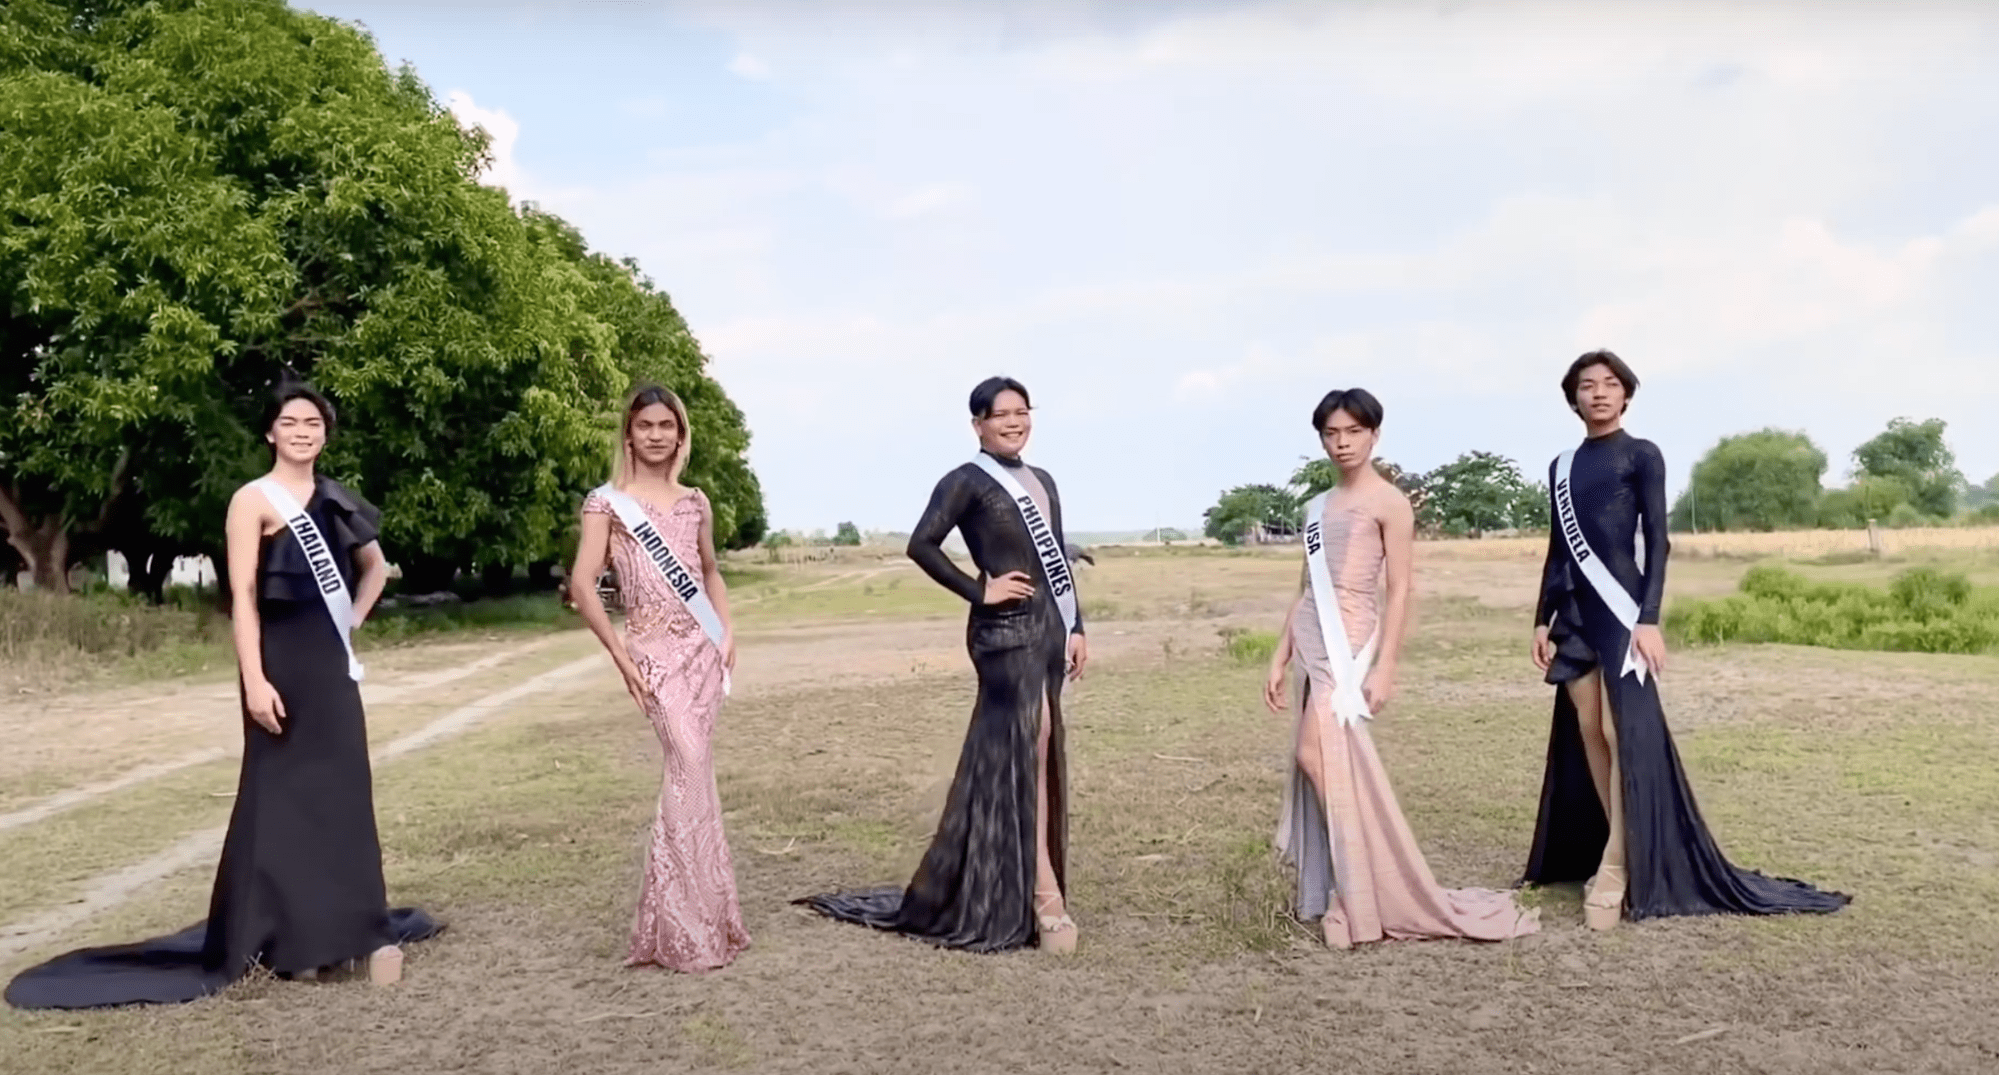 5 Filipinos in evening gowns